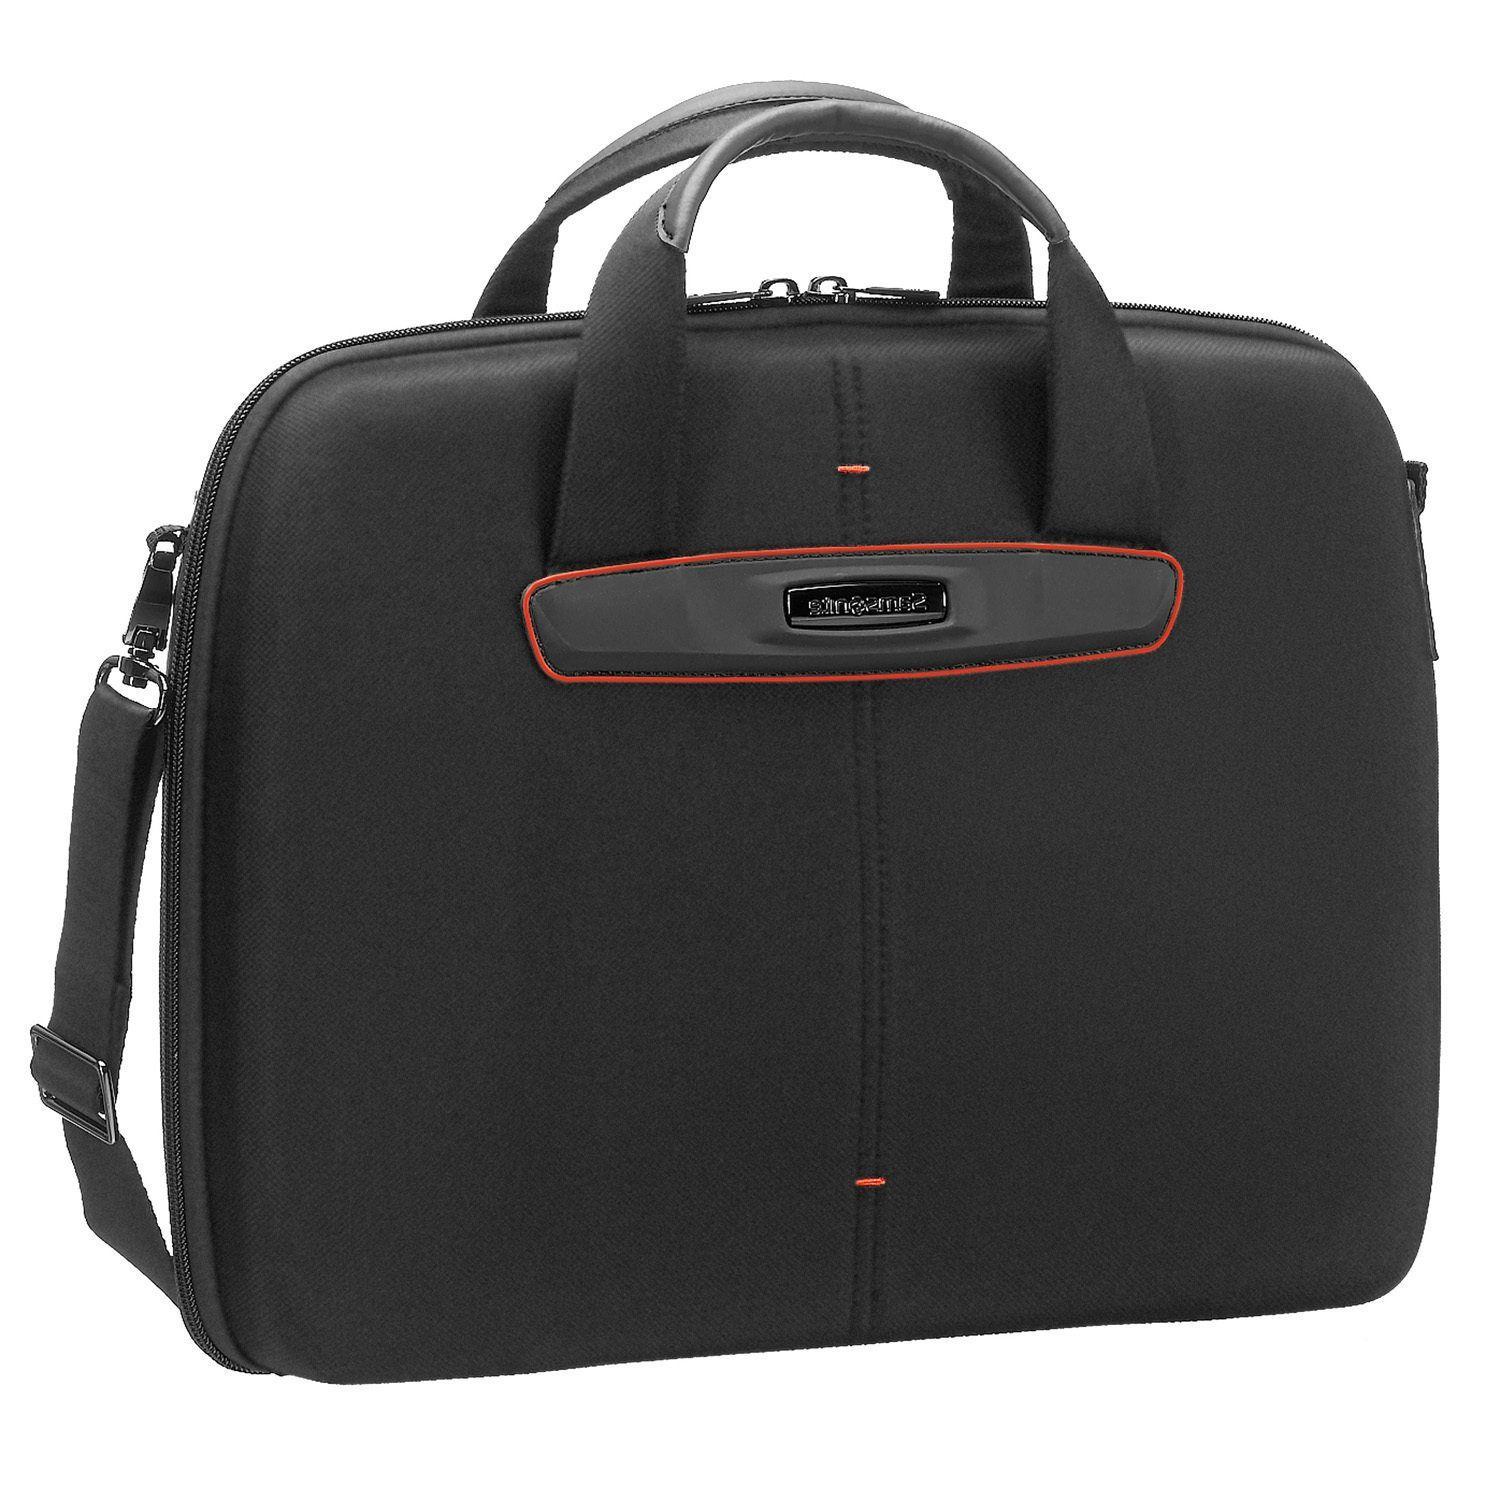 Samsonite Samsonite Laptop Pillow 3 Laptoptasche 45 cm